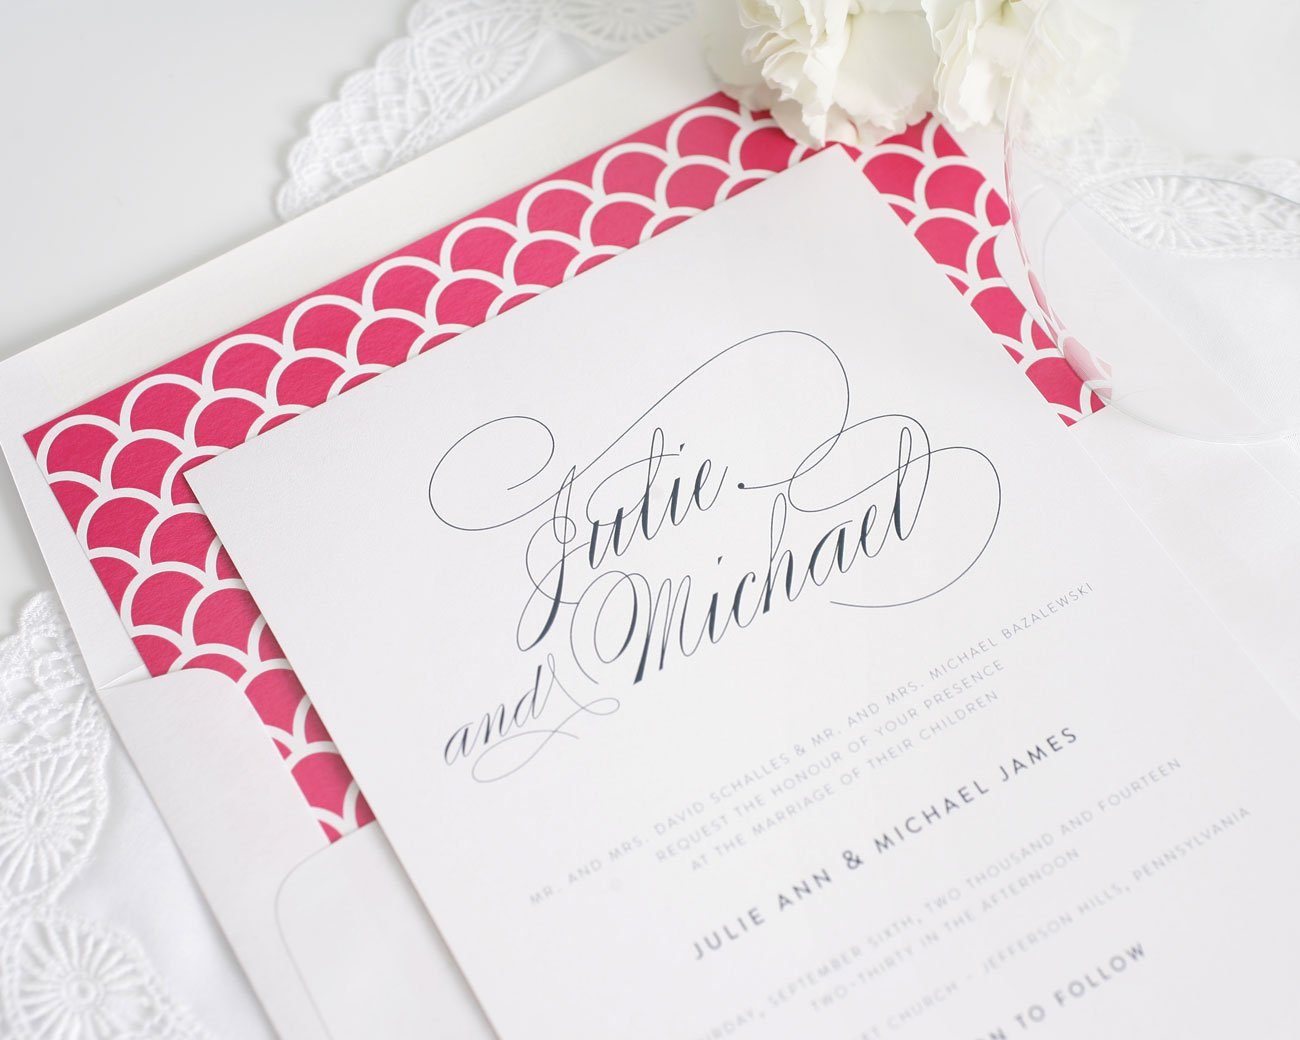 Preppy wedding invitations in hot pink